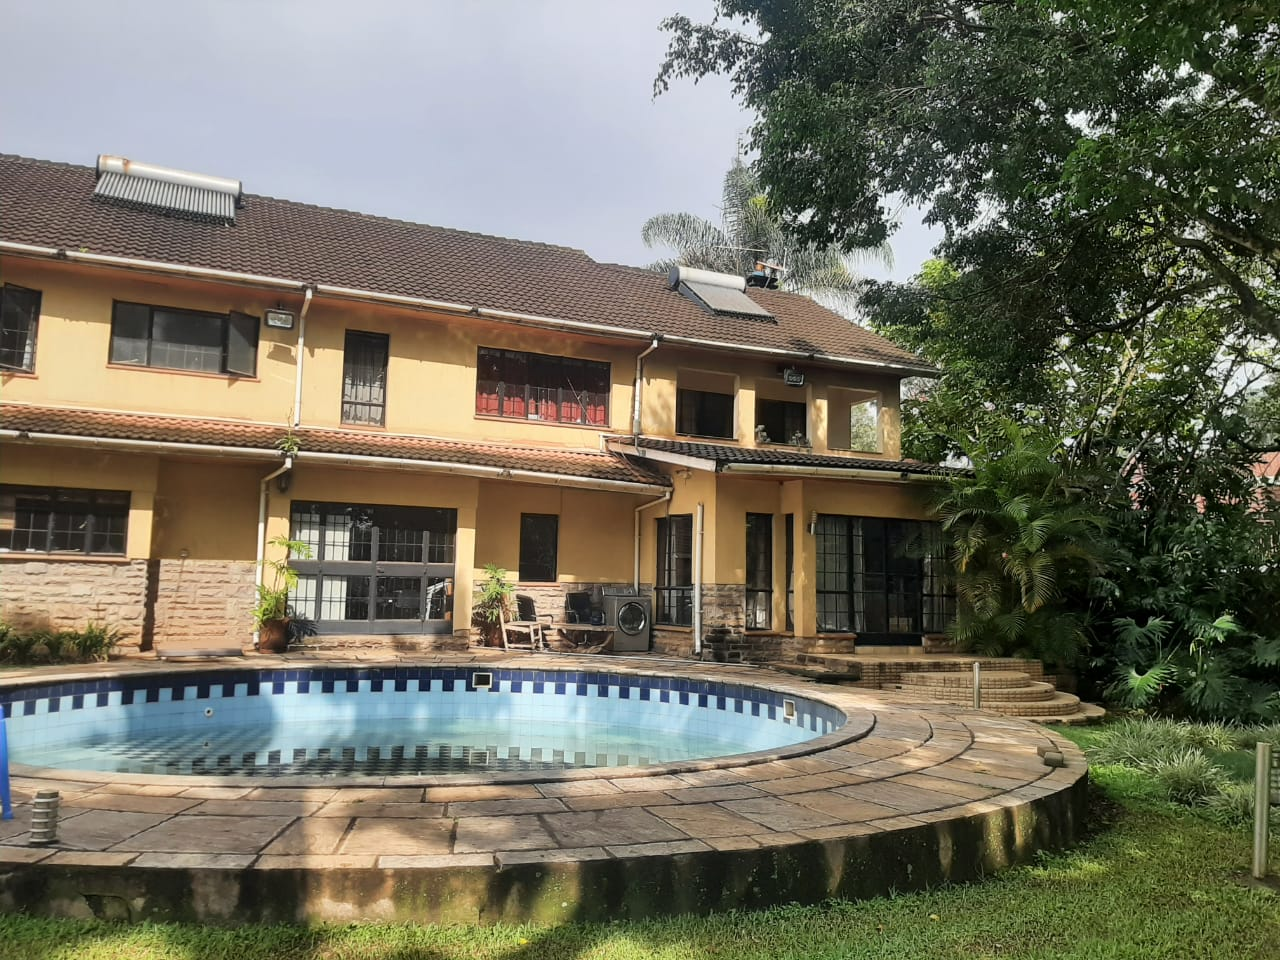 Spacious 9 Bedroom House for Rent at Ksh700k Ideal for a Corporate Organisation, NGO or Residential Property located in Lavington, Nairobi